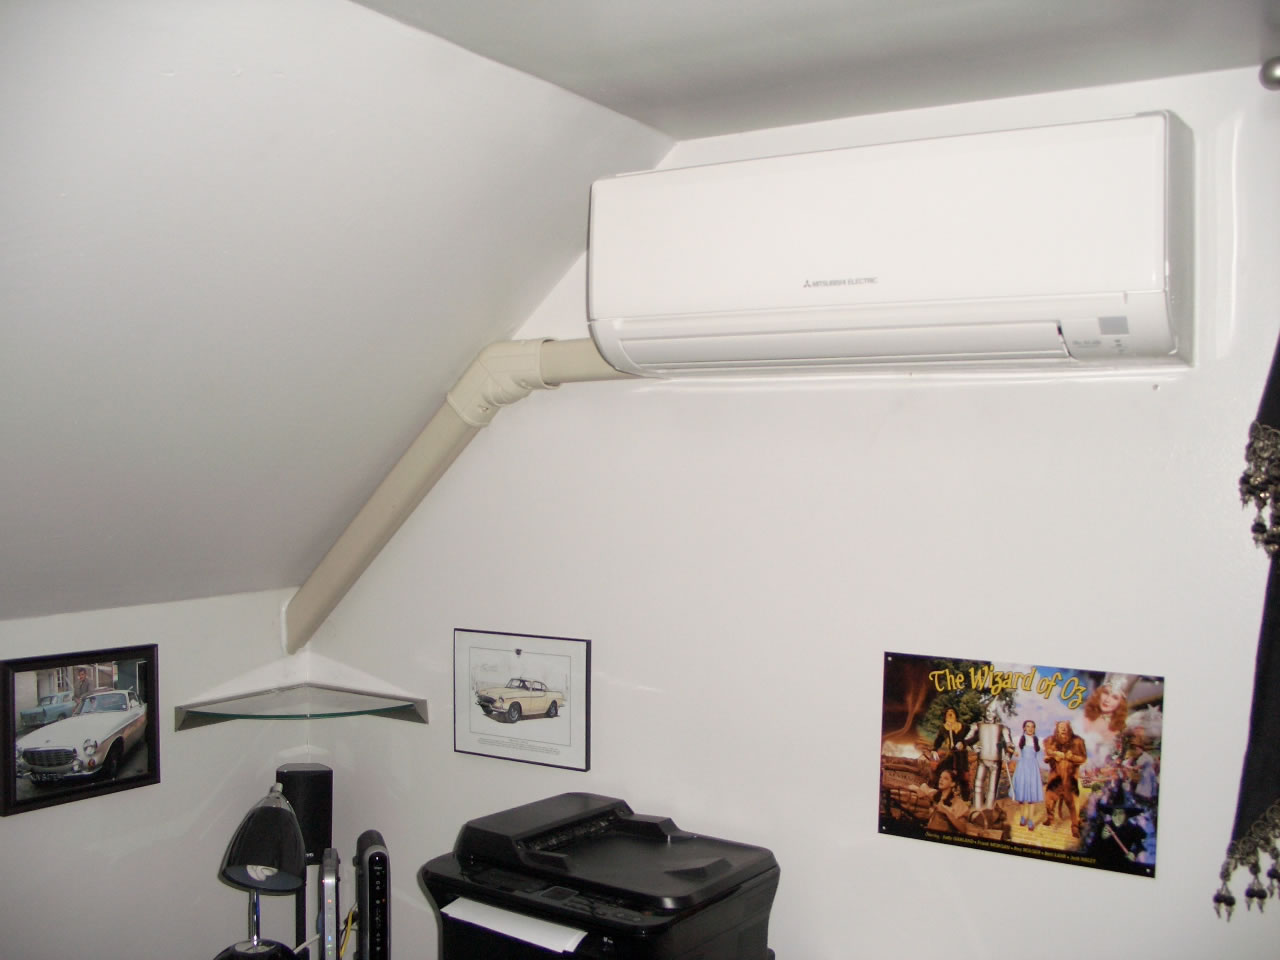 Pin Mitsubishi Wall Mounted Air Conditioning Units on Pinterest #946E37